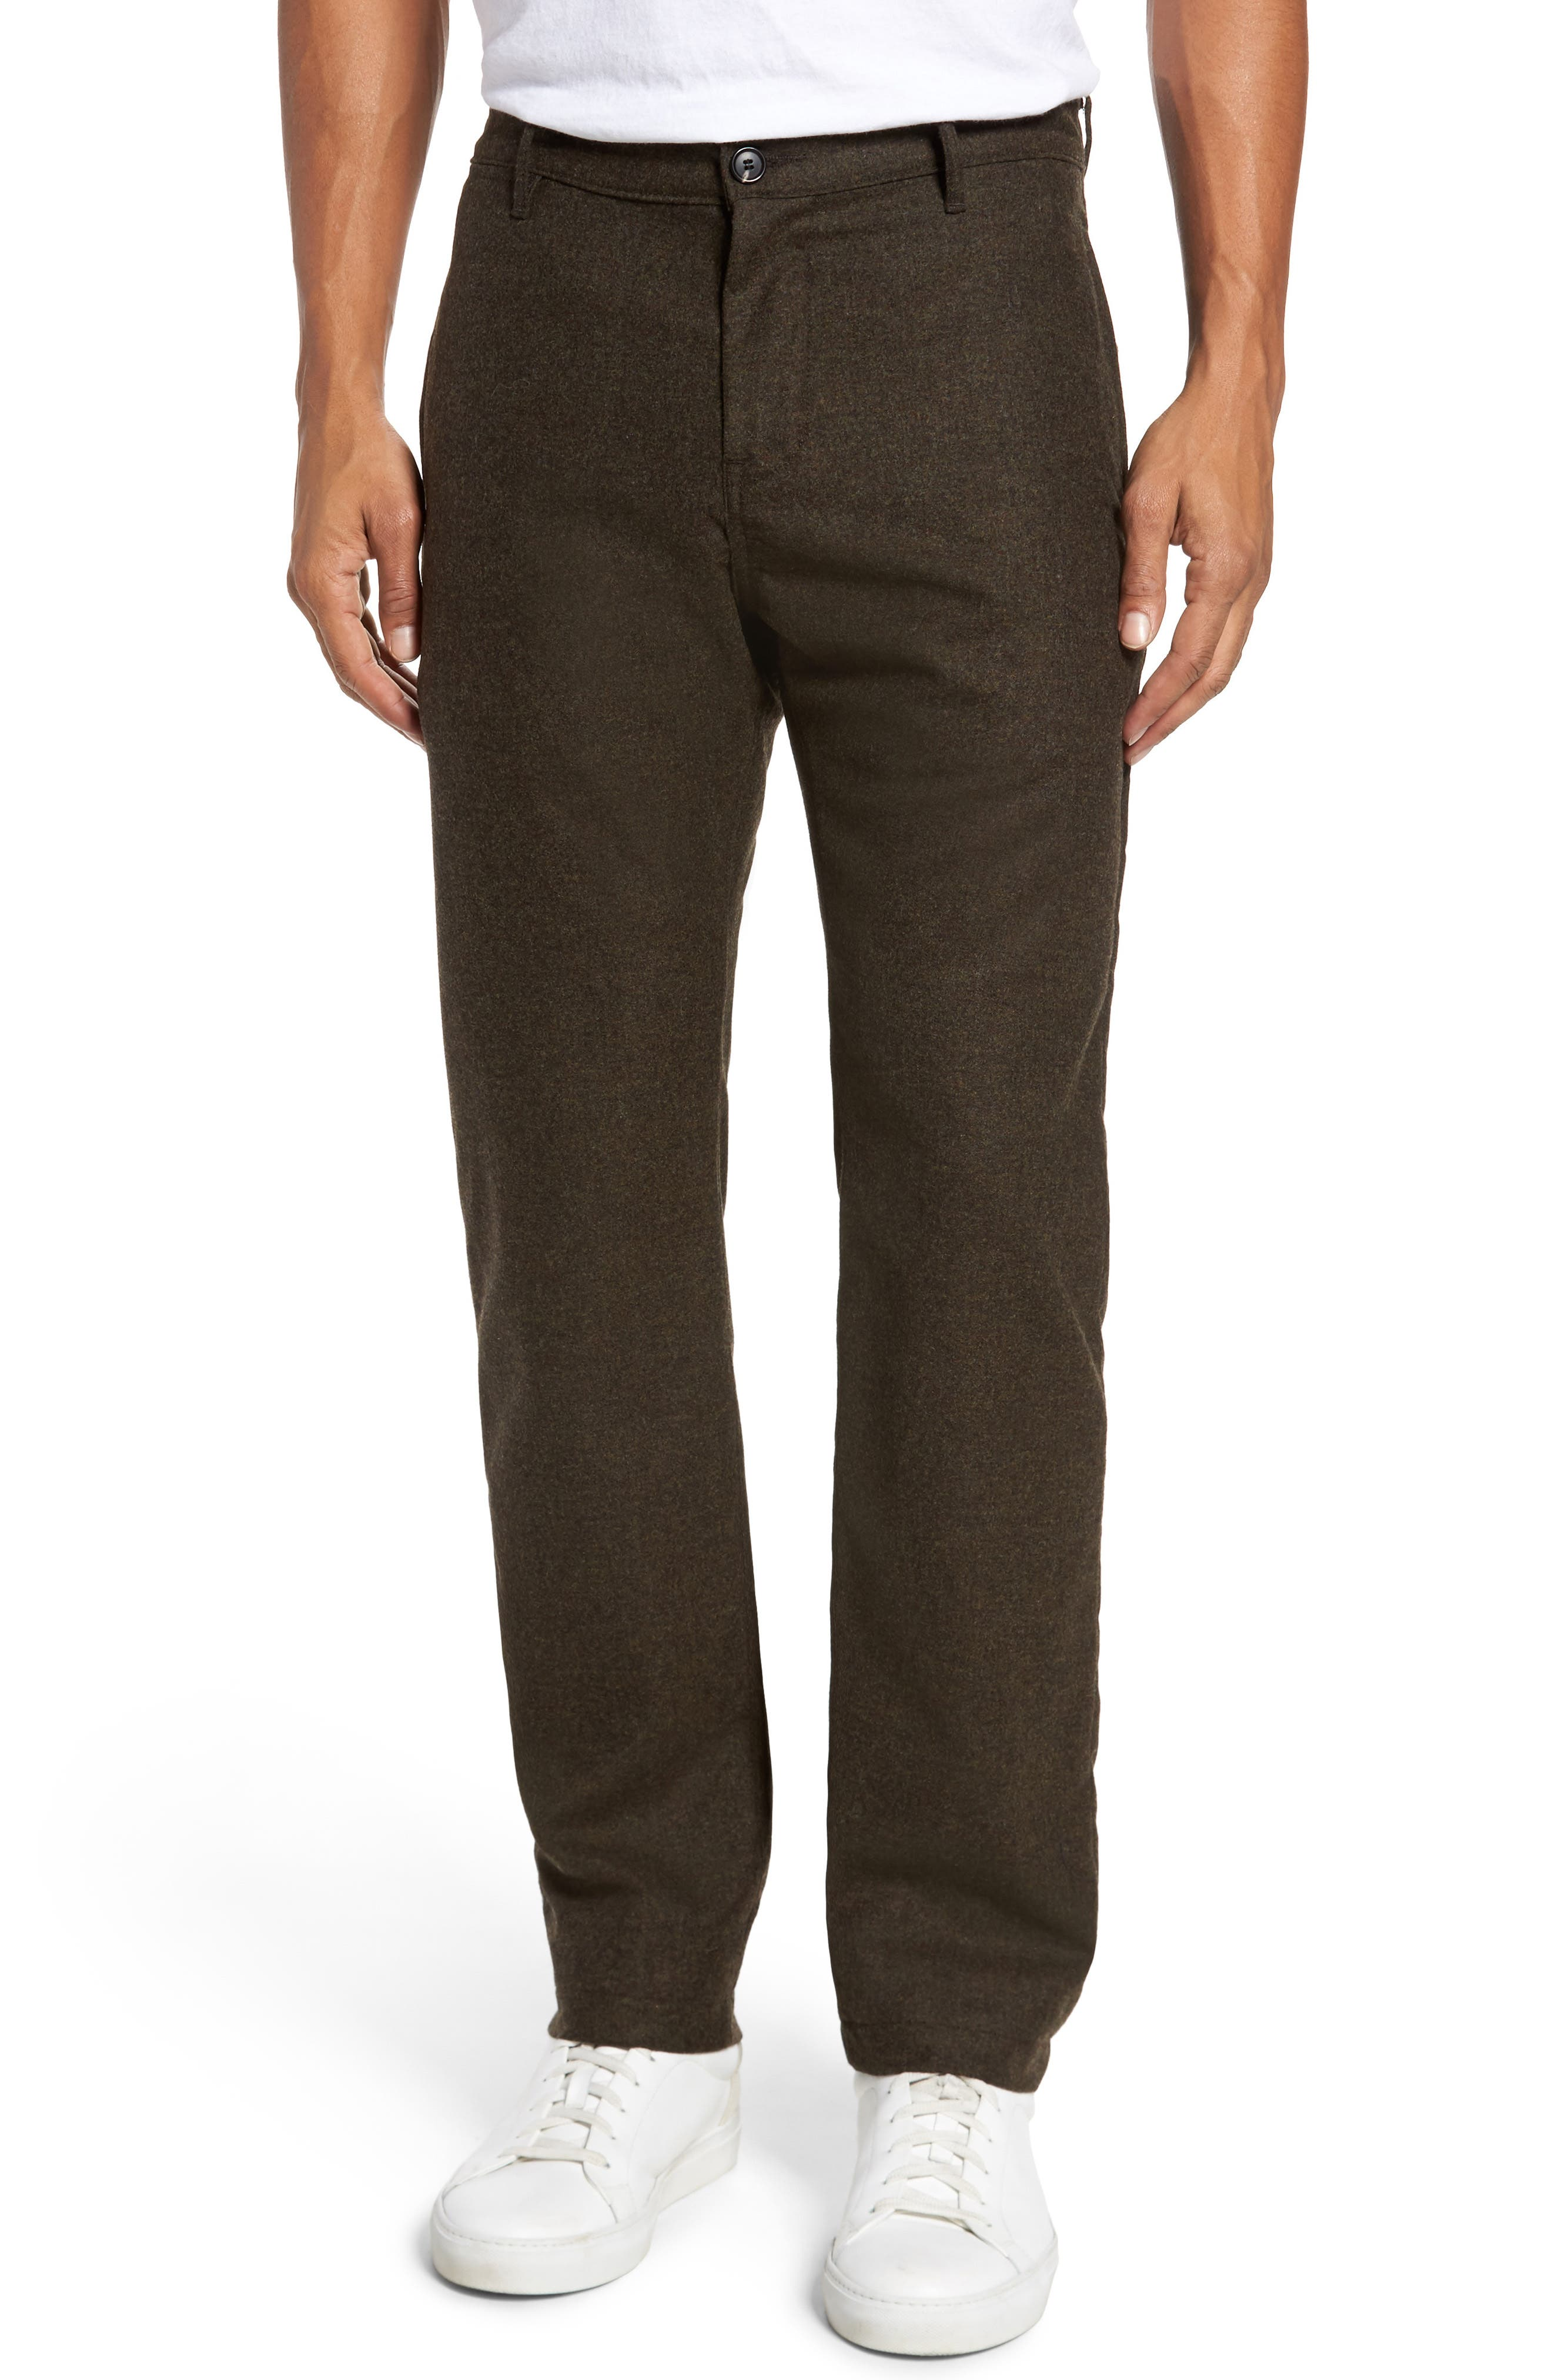 Wool & Cashmere Slim Straight Leg Chinos,                         Main,                         color, Military